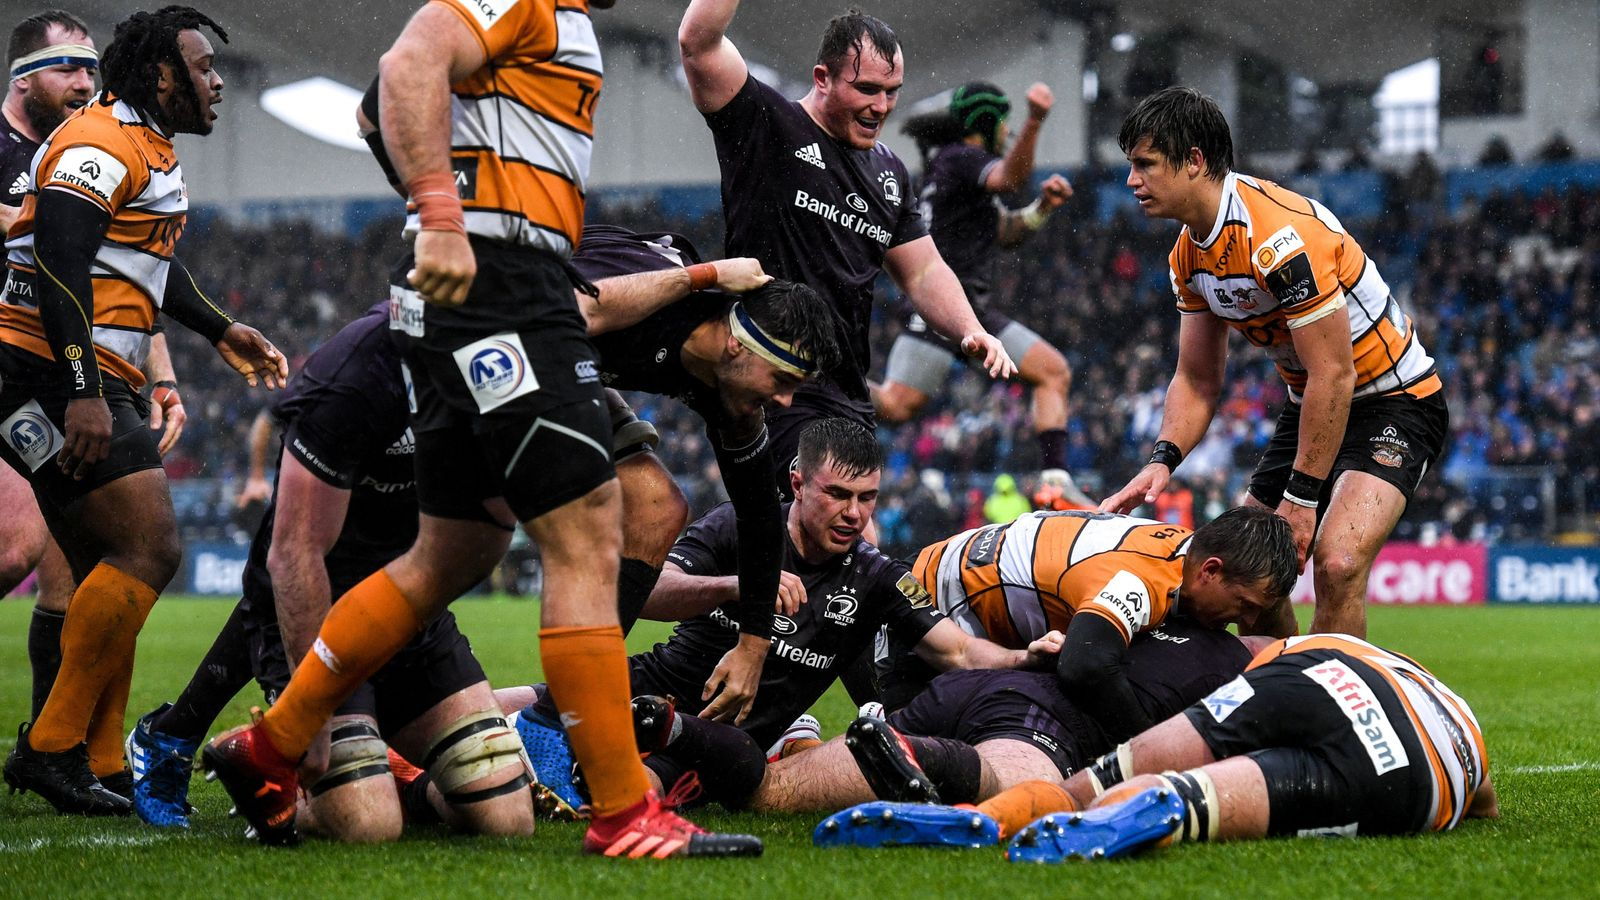 PRO14: Leinster stay unbeaten, Ospreys score rare win